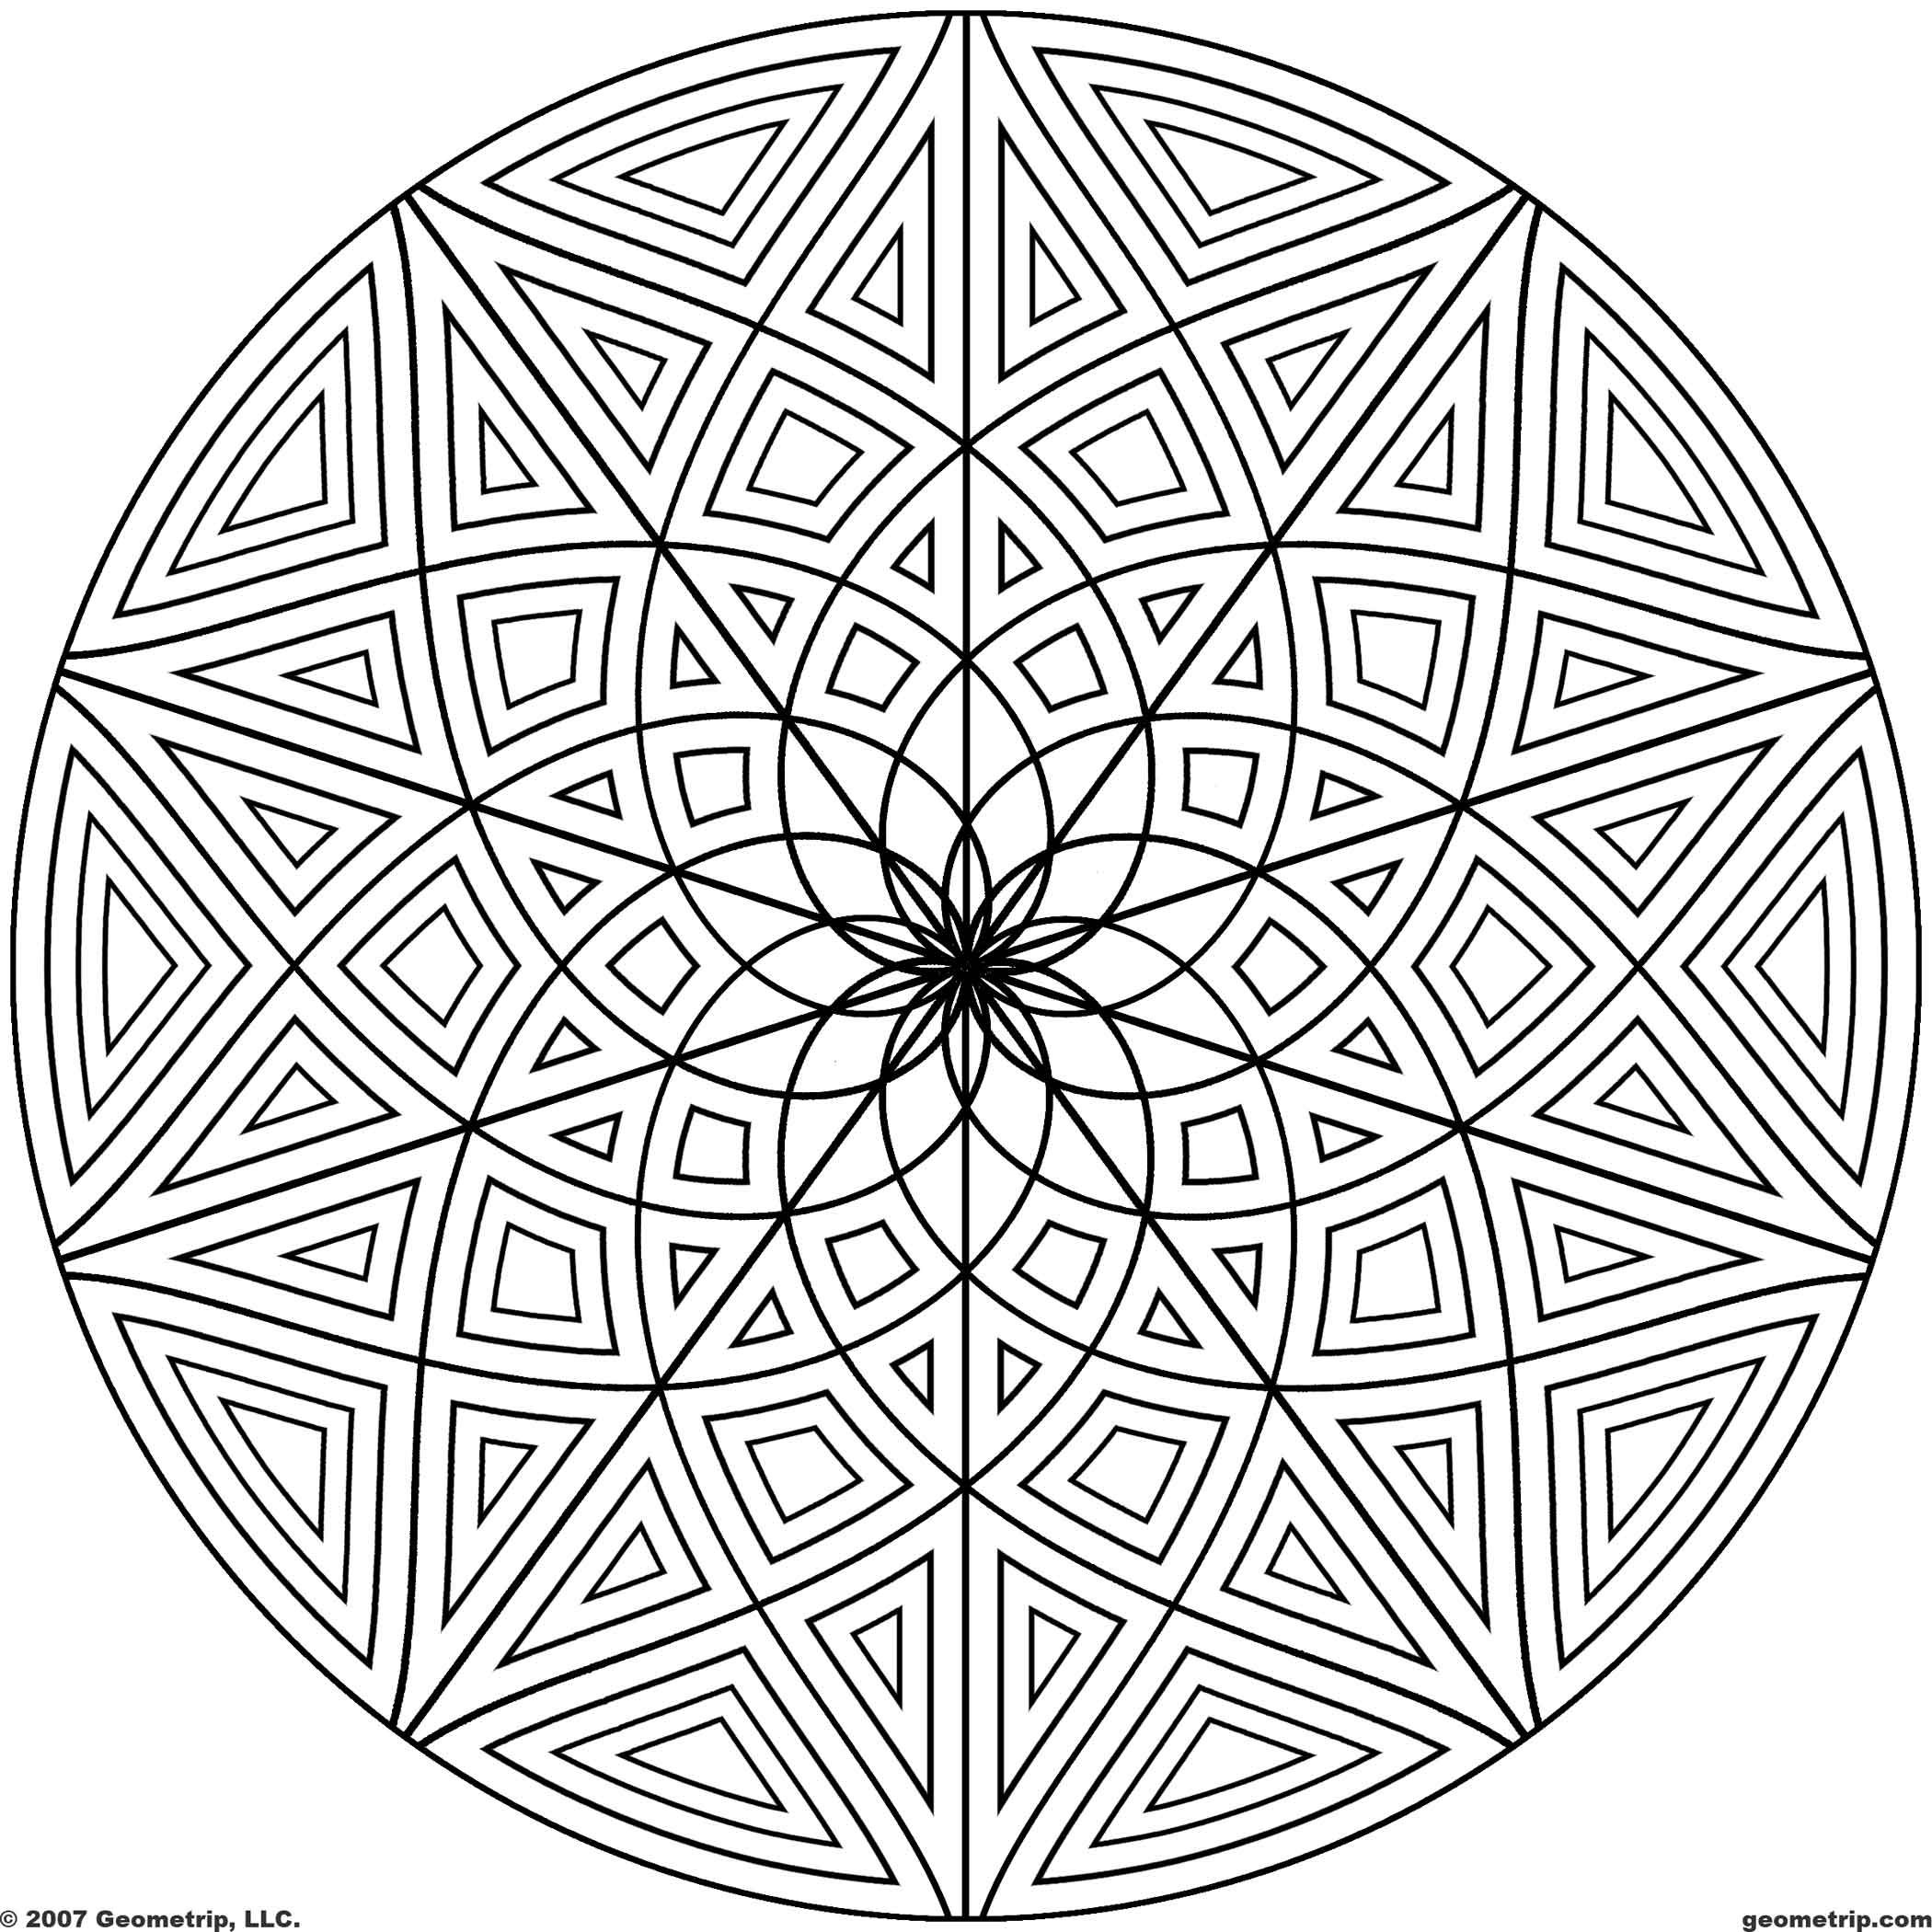 cool designs coloring pages coloring pages cool designs coloring pages az coloring cool pages designs coloring